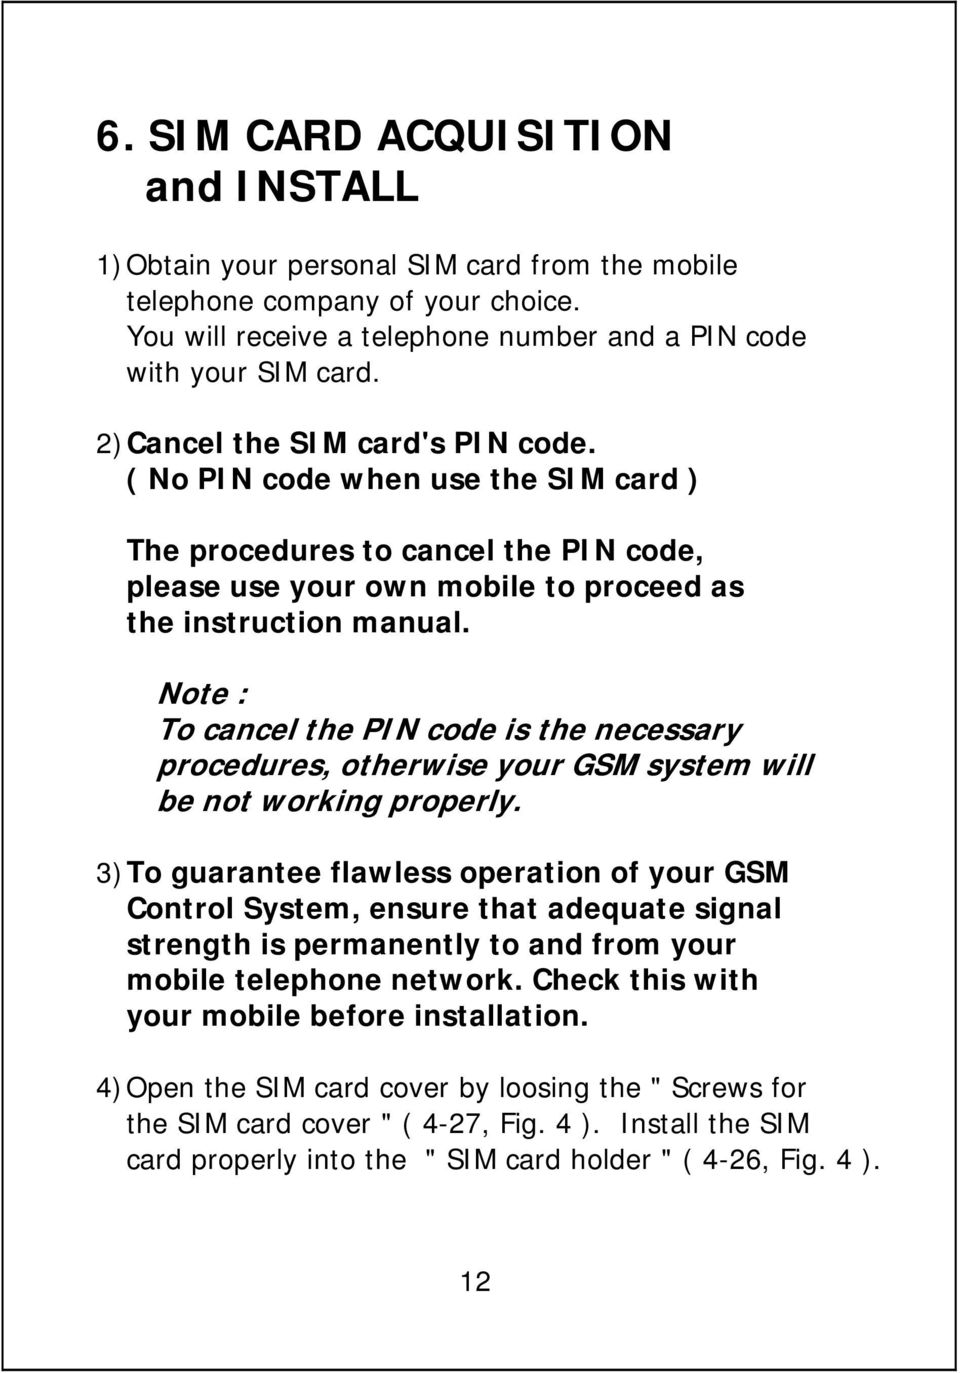 Note : To cancel the PIN code is the necessary procedures, otherwise your GSM system will be not working properly.